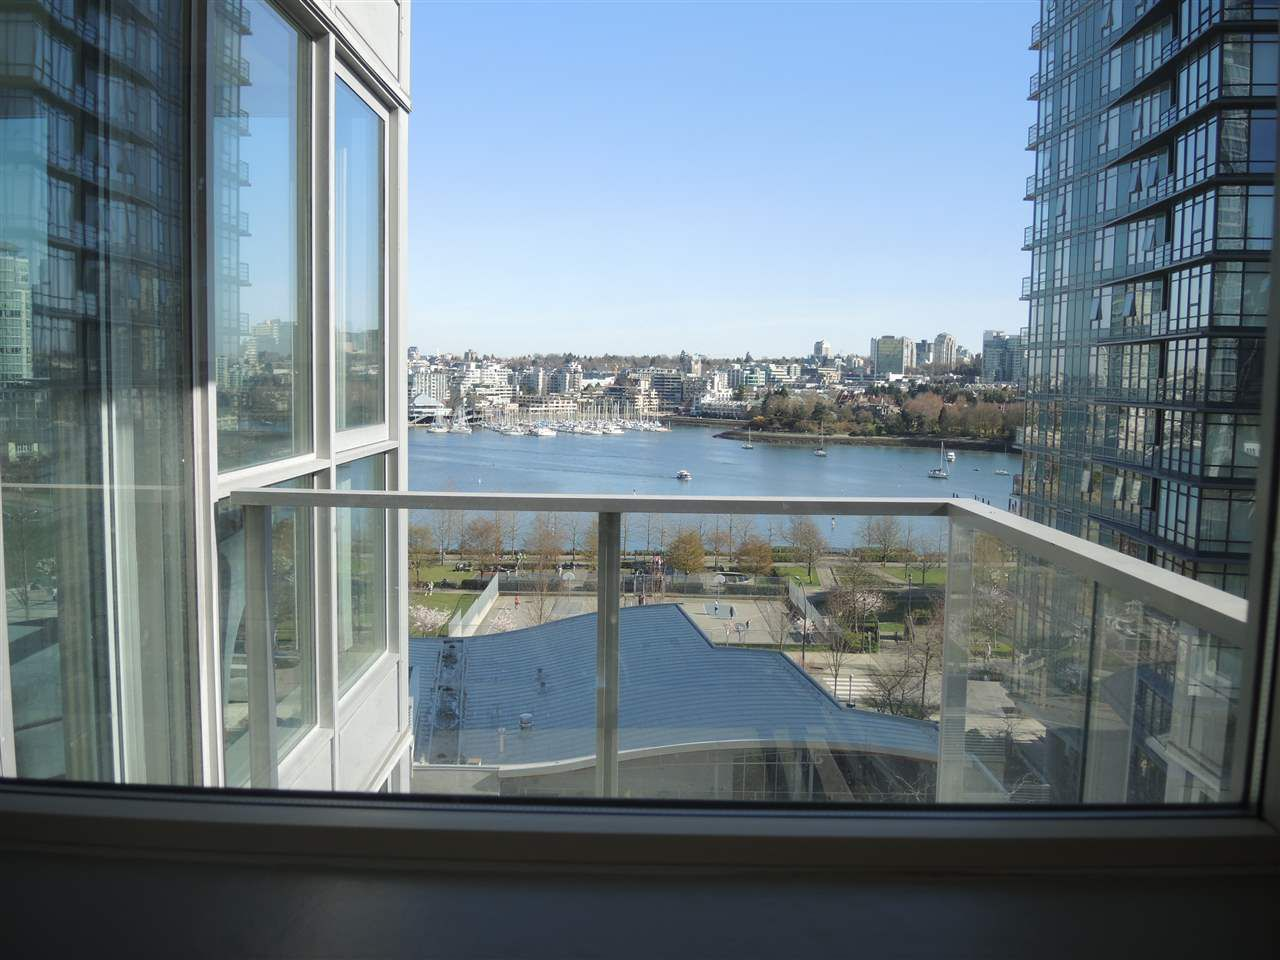 Photo 9: Photos: 902 1408 STRATHMORE MEWS in Vancouver: Yaletown Condo for sale (Vancouver West)  : MLS®# R2011692